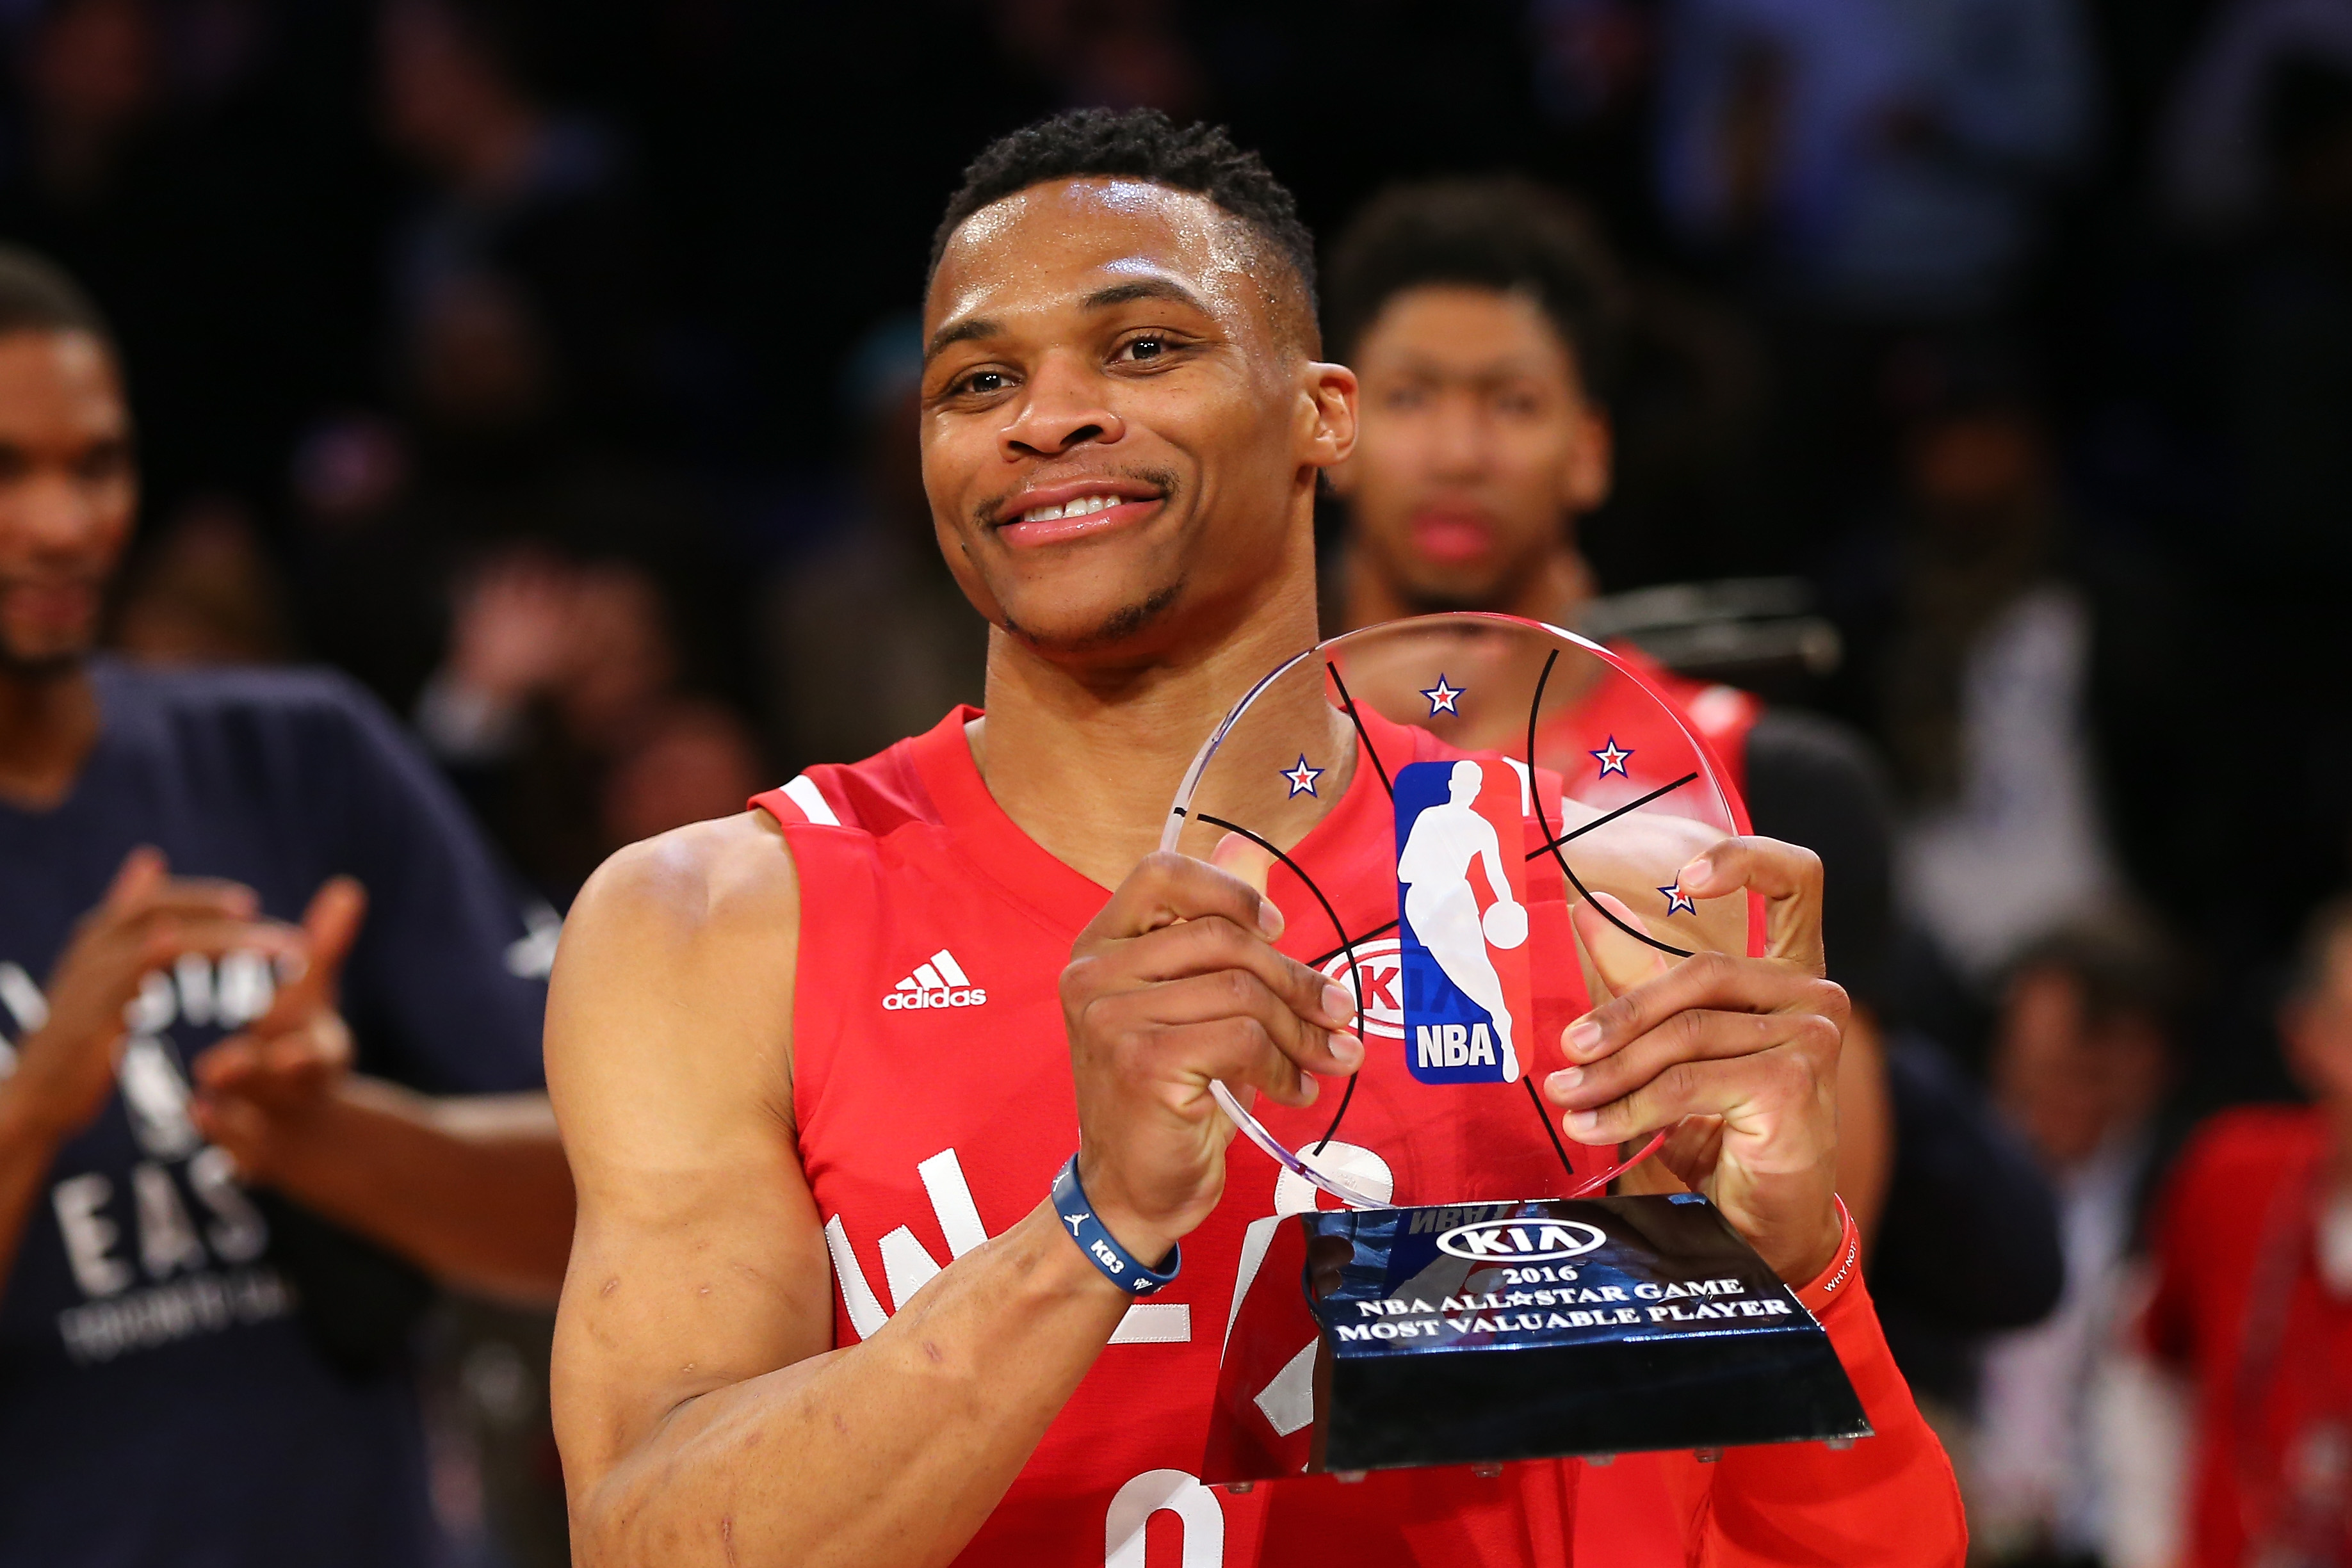 TORONTO, ON - FEBRUARY 14:  Russell Westbrook #0 of the Oklahoma City Thunder and the Western Conference holds the MVP trophy after defeating the Eastern Conference during the NBA All-Star Game 2016 at the Air Canada Centre on February 14, 2016 in Toronto, Ontario. The Western Conference defeated the Eastern Conference 196-173. NOTE TO USER: User expressly acknowledges and agrees that, by downloading and/or using this Photograph, user is consenting to the terms and conditions of the Getty Images License Agreement.  (Photo by Elsa/Getty Images)